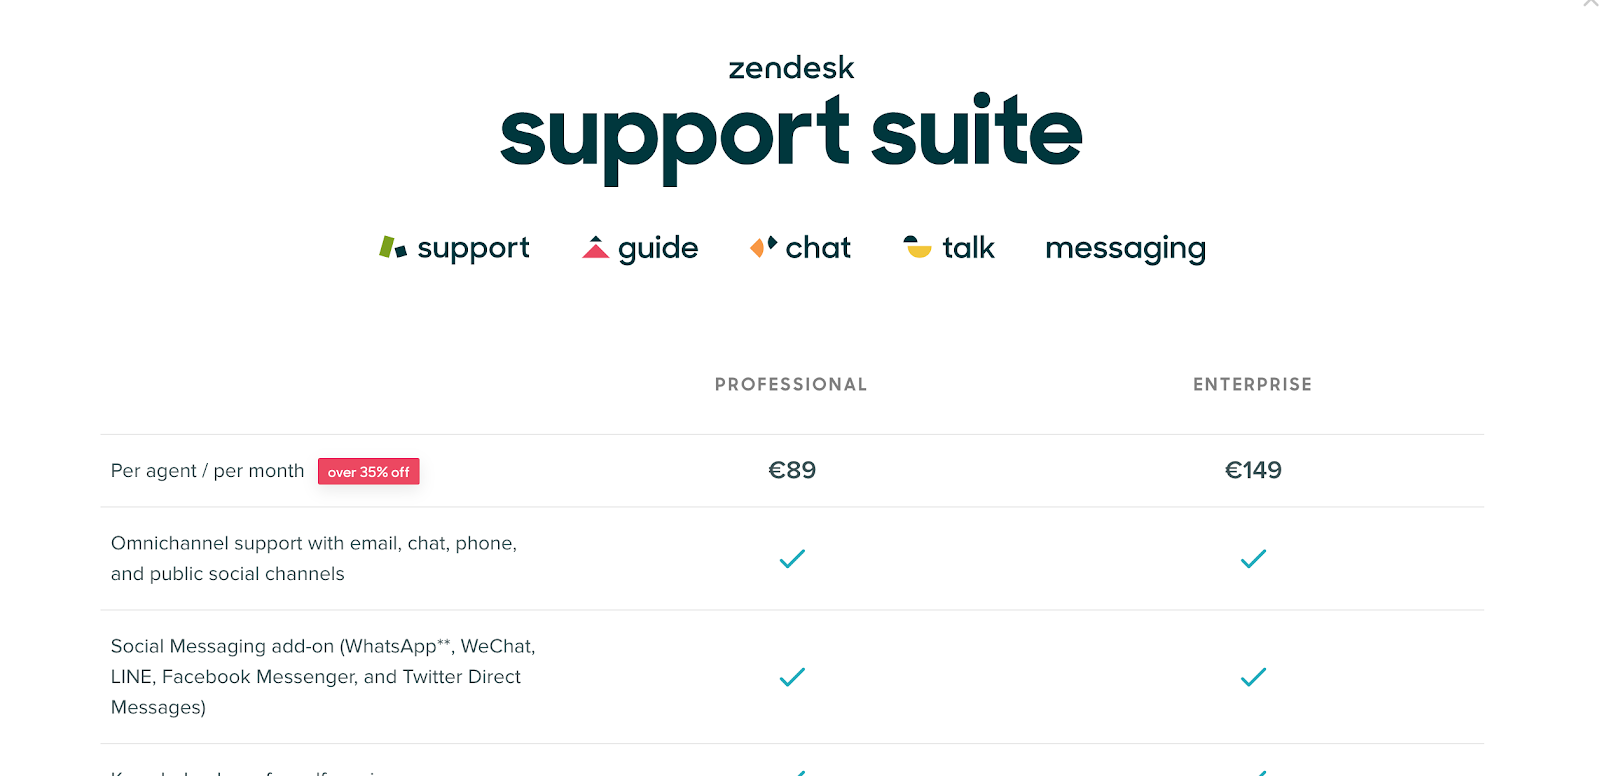 Zendesk support suite pricing